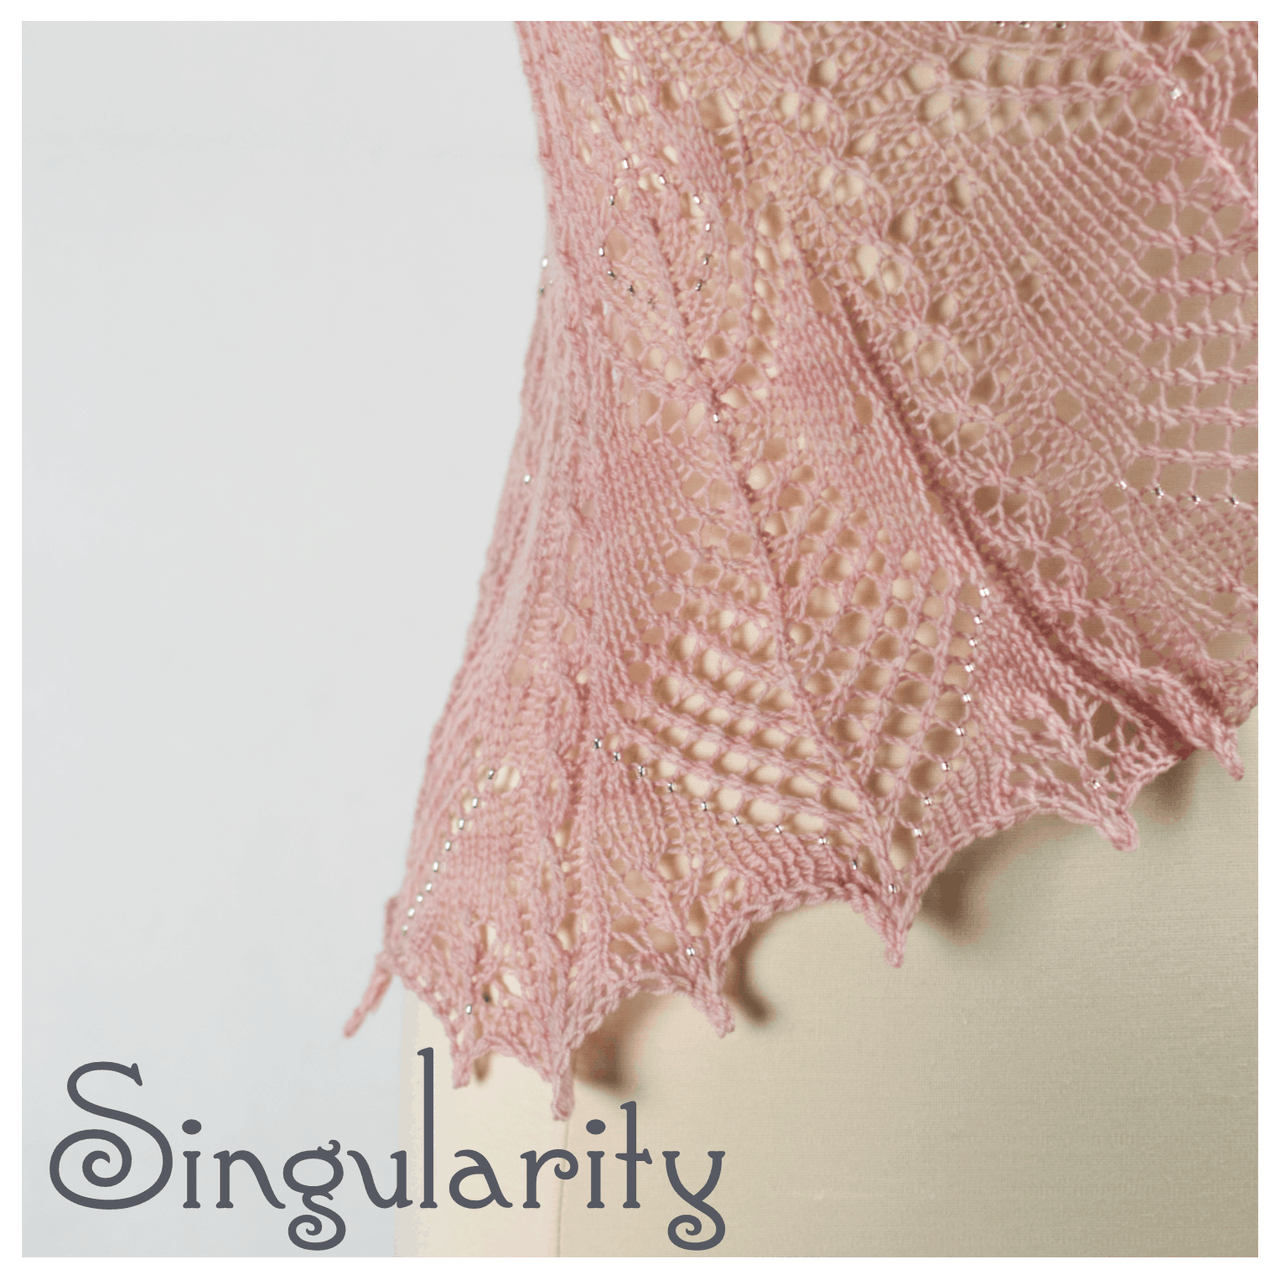 Singularity Shawl Kit